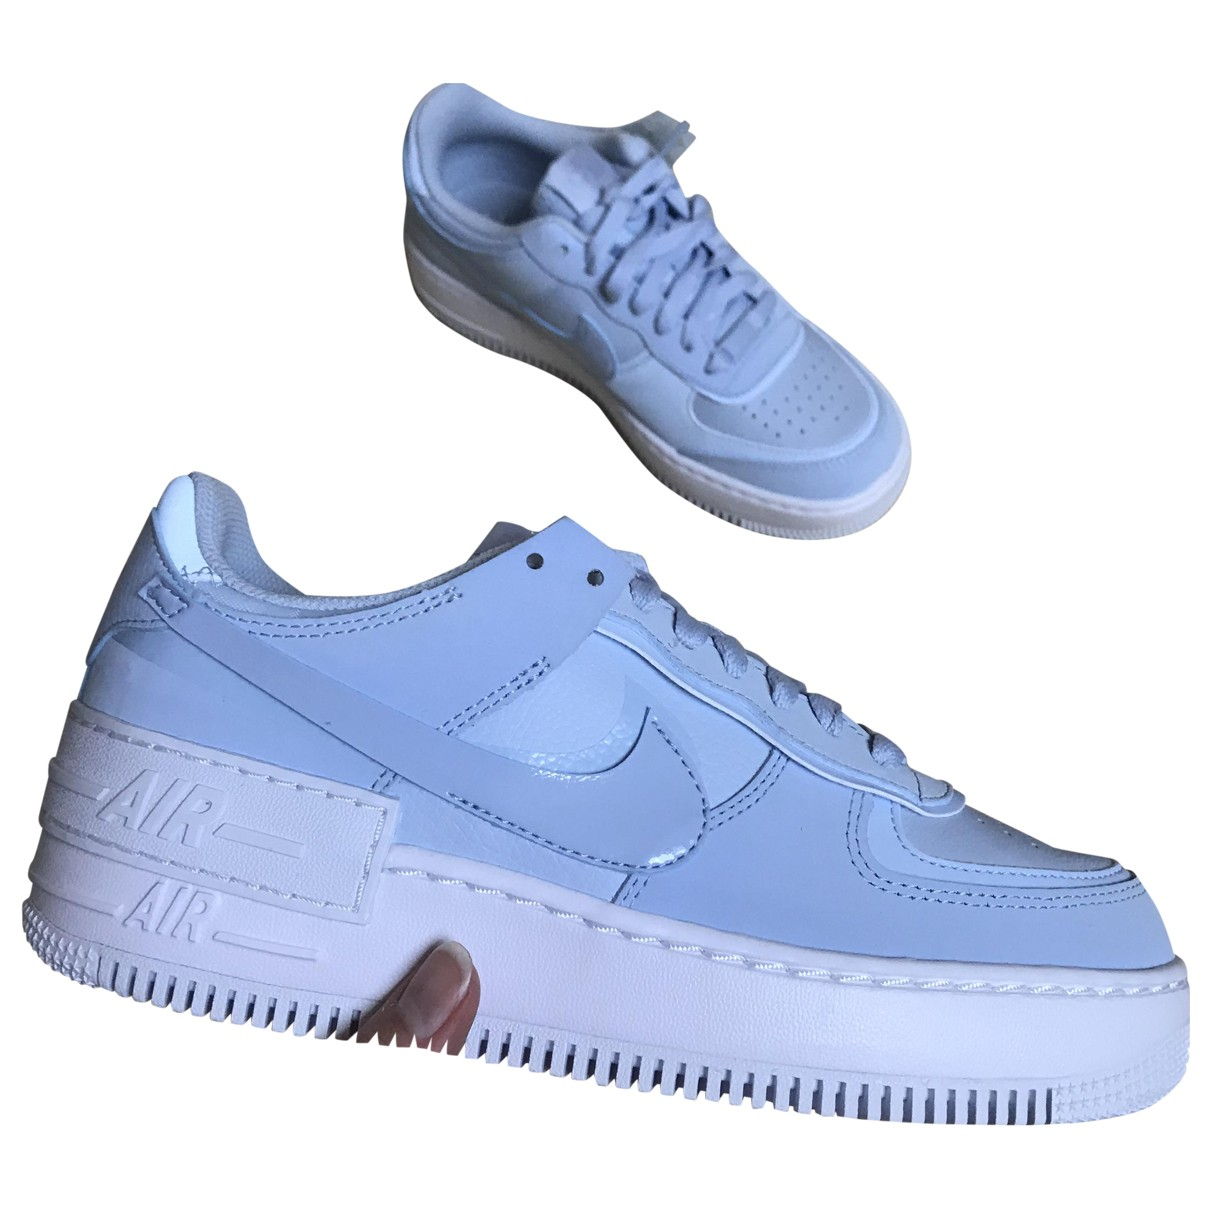 Nike Air Force 1 Blue Leather Trainers for Women 38 EU